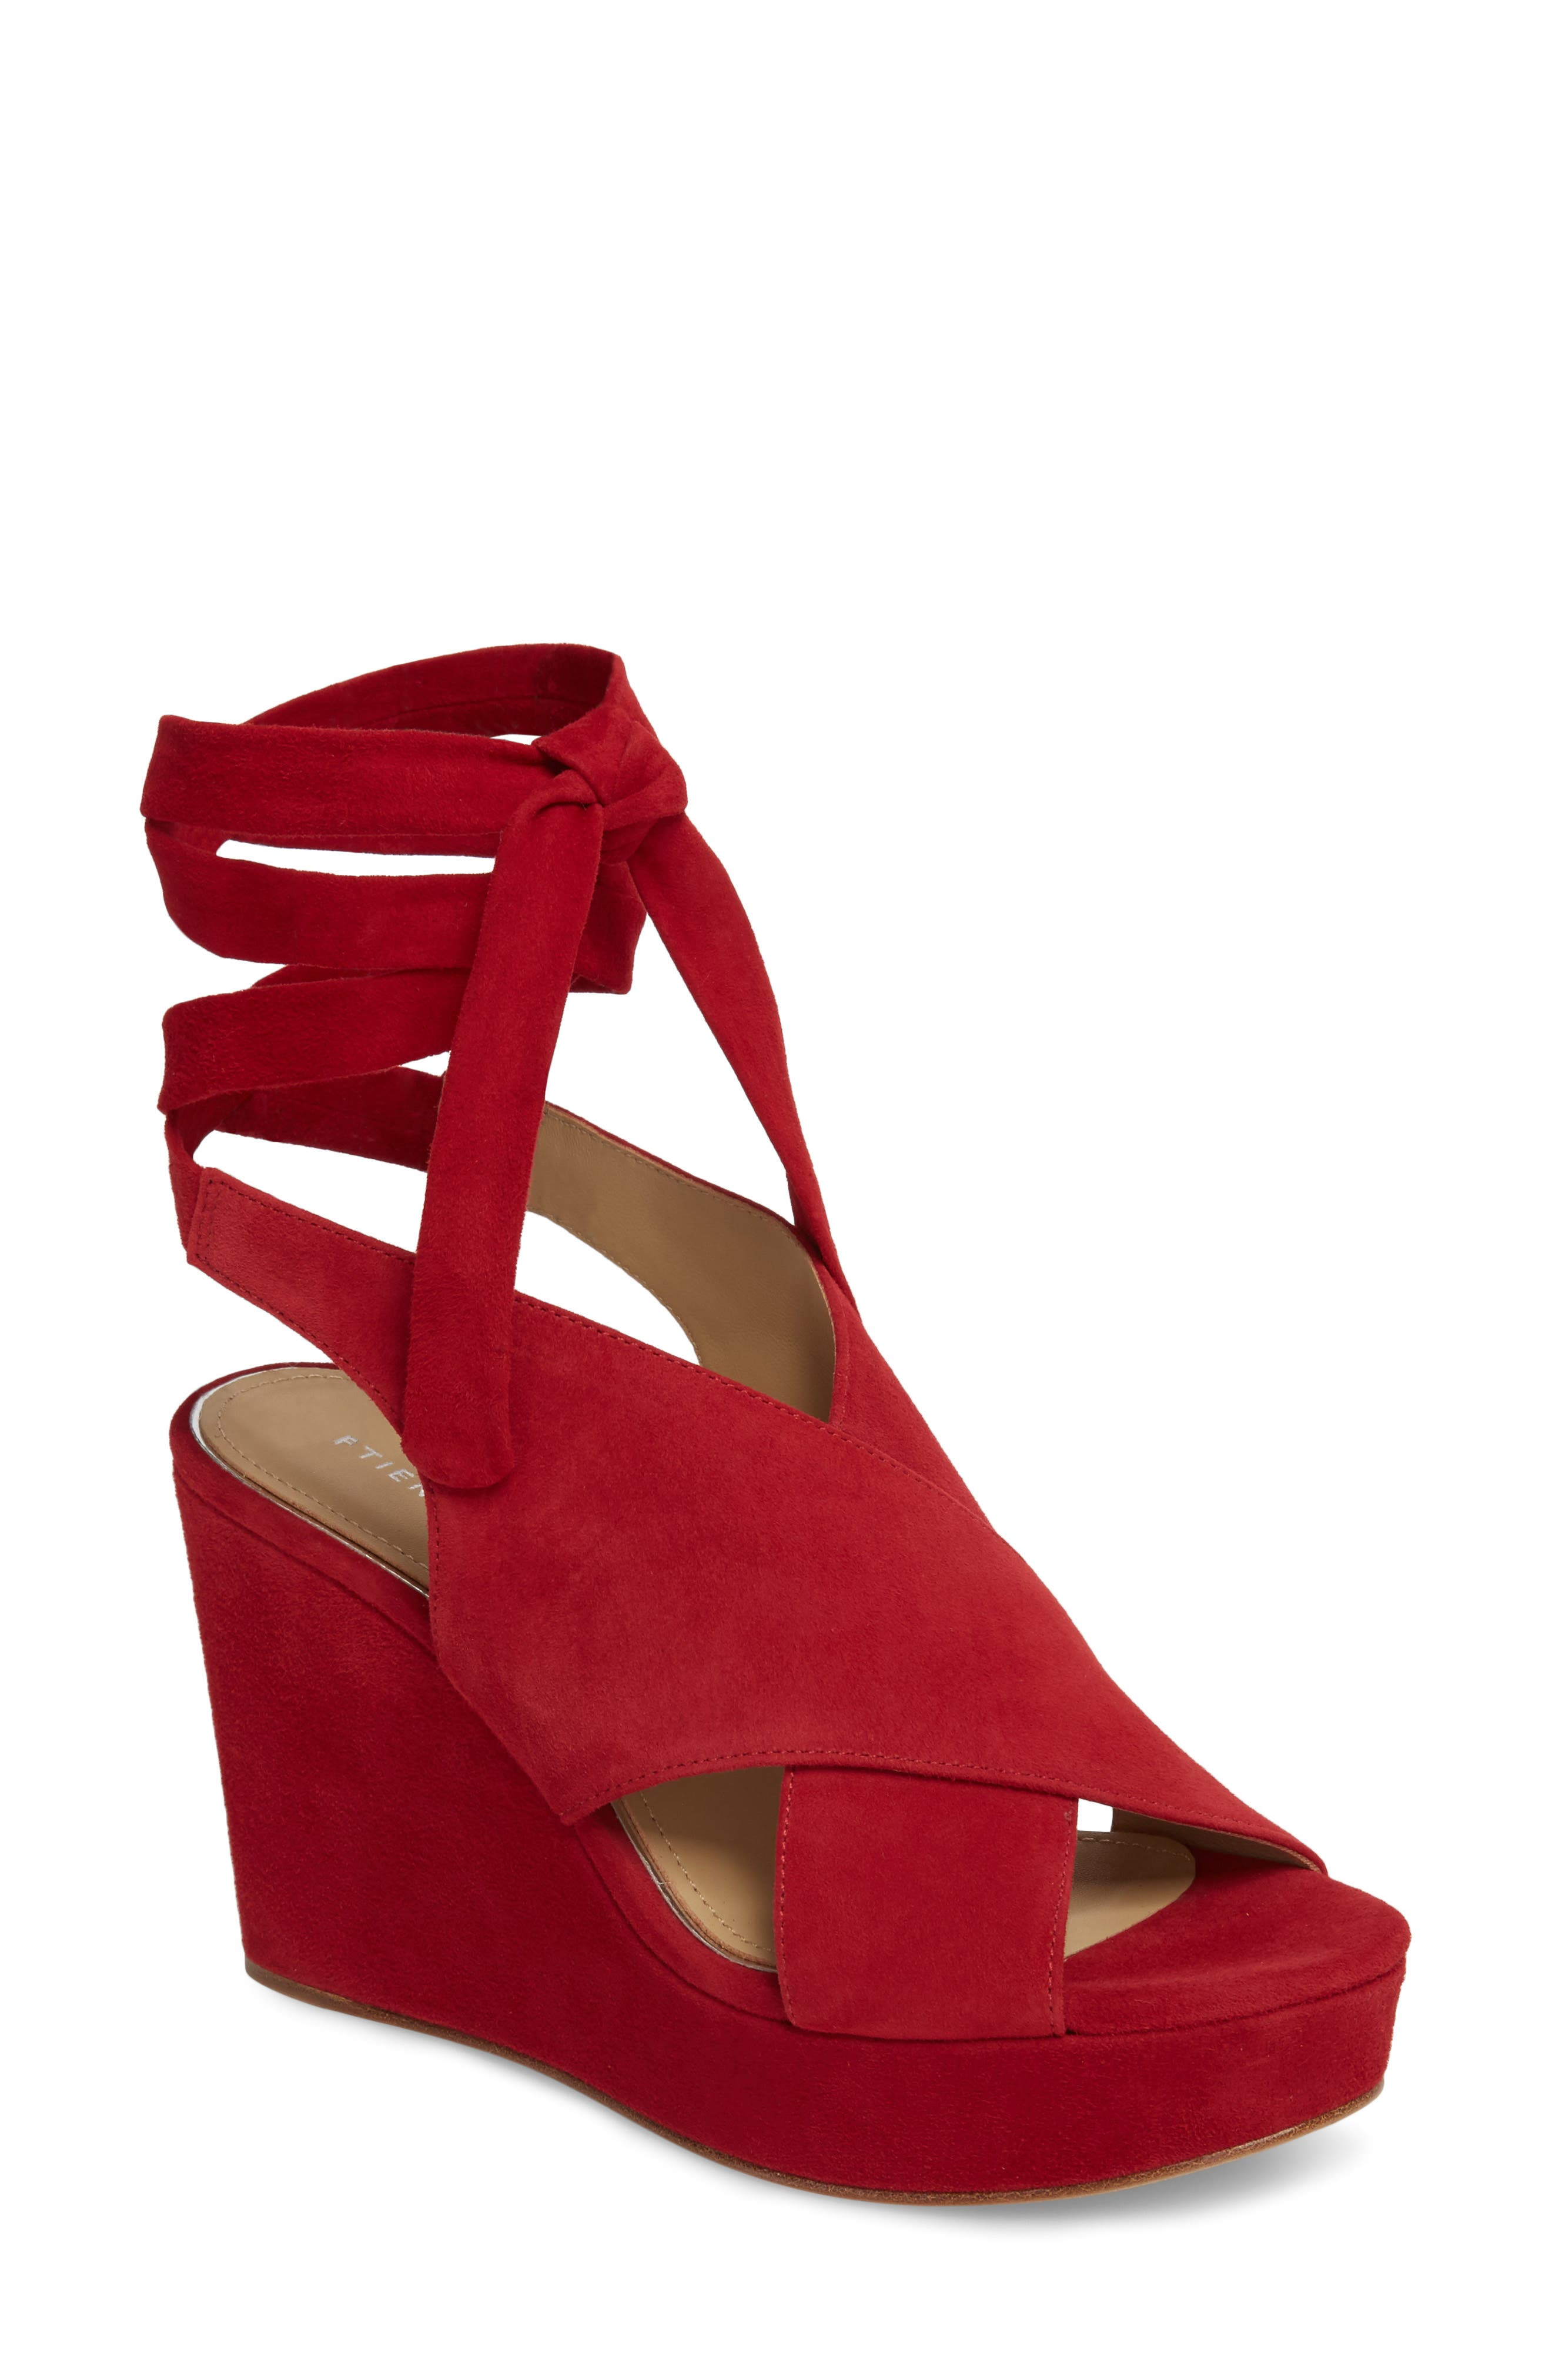 Dominica Platform Wedge Sandal,                             Main thumbnail 1, color,                             Cherry Suede